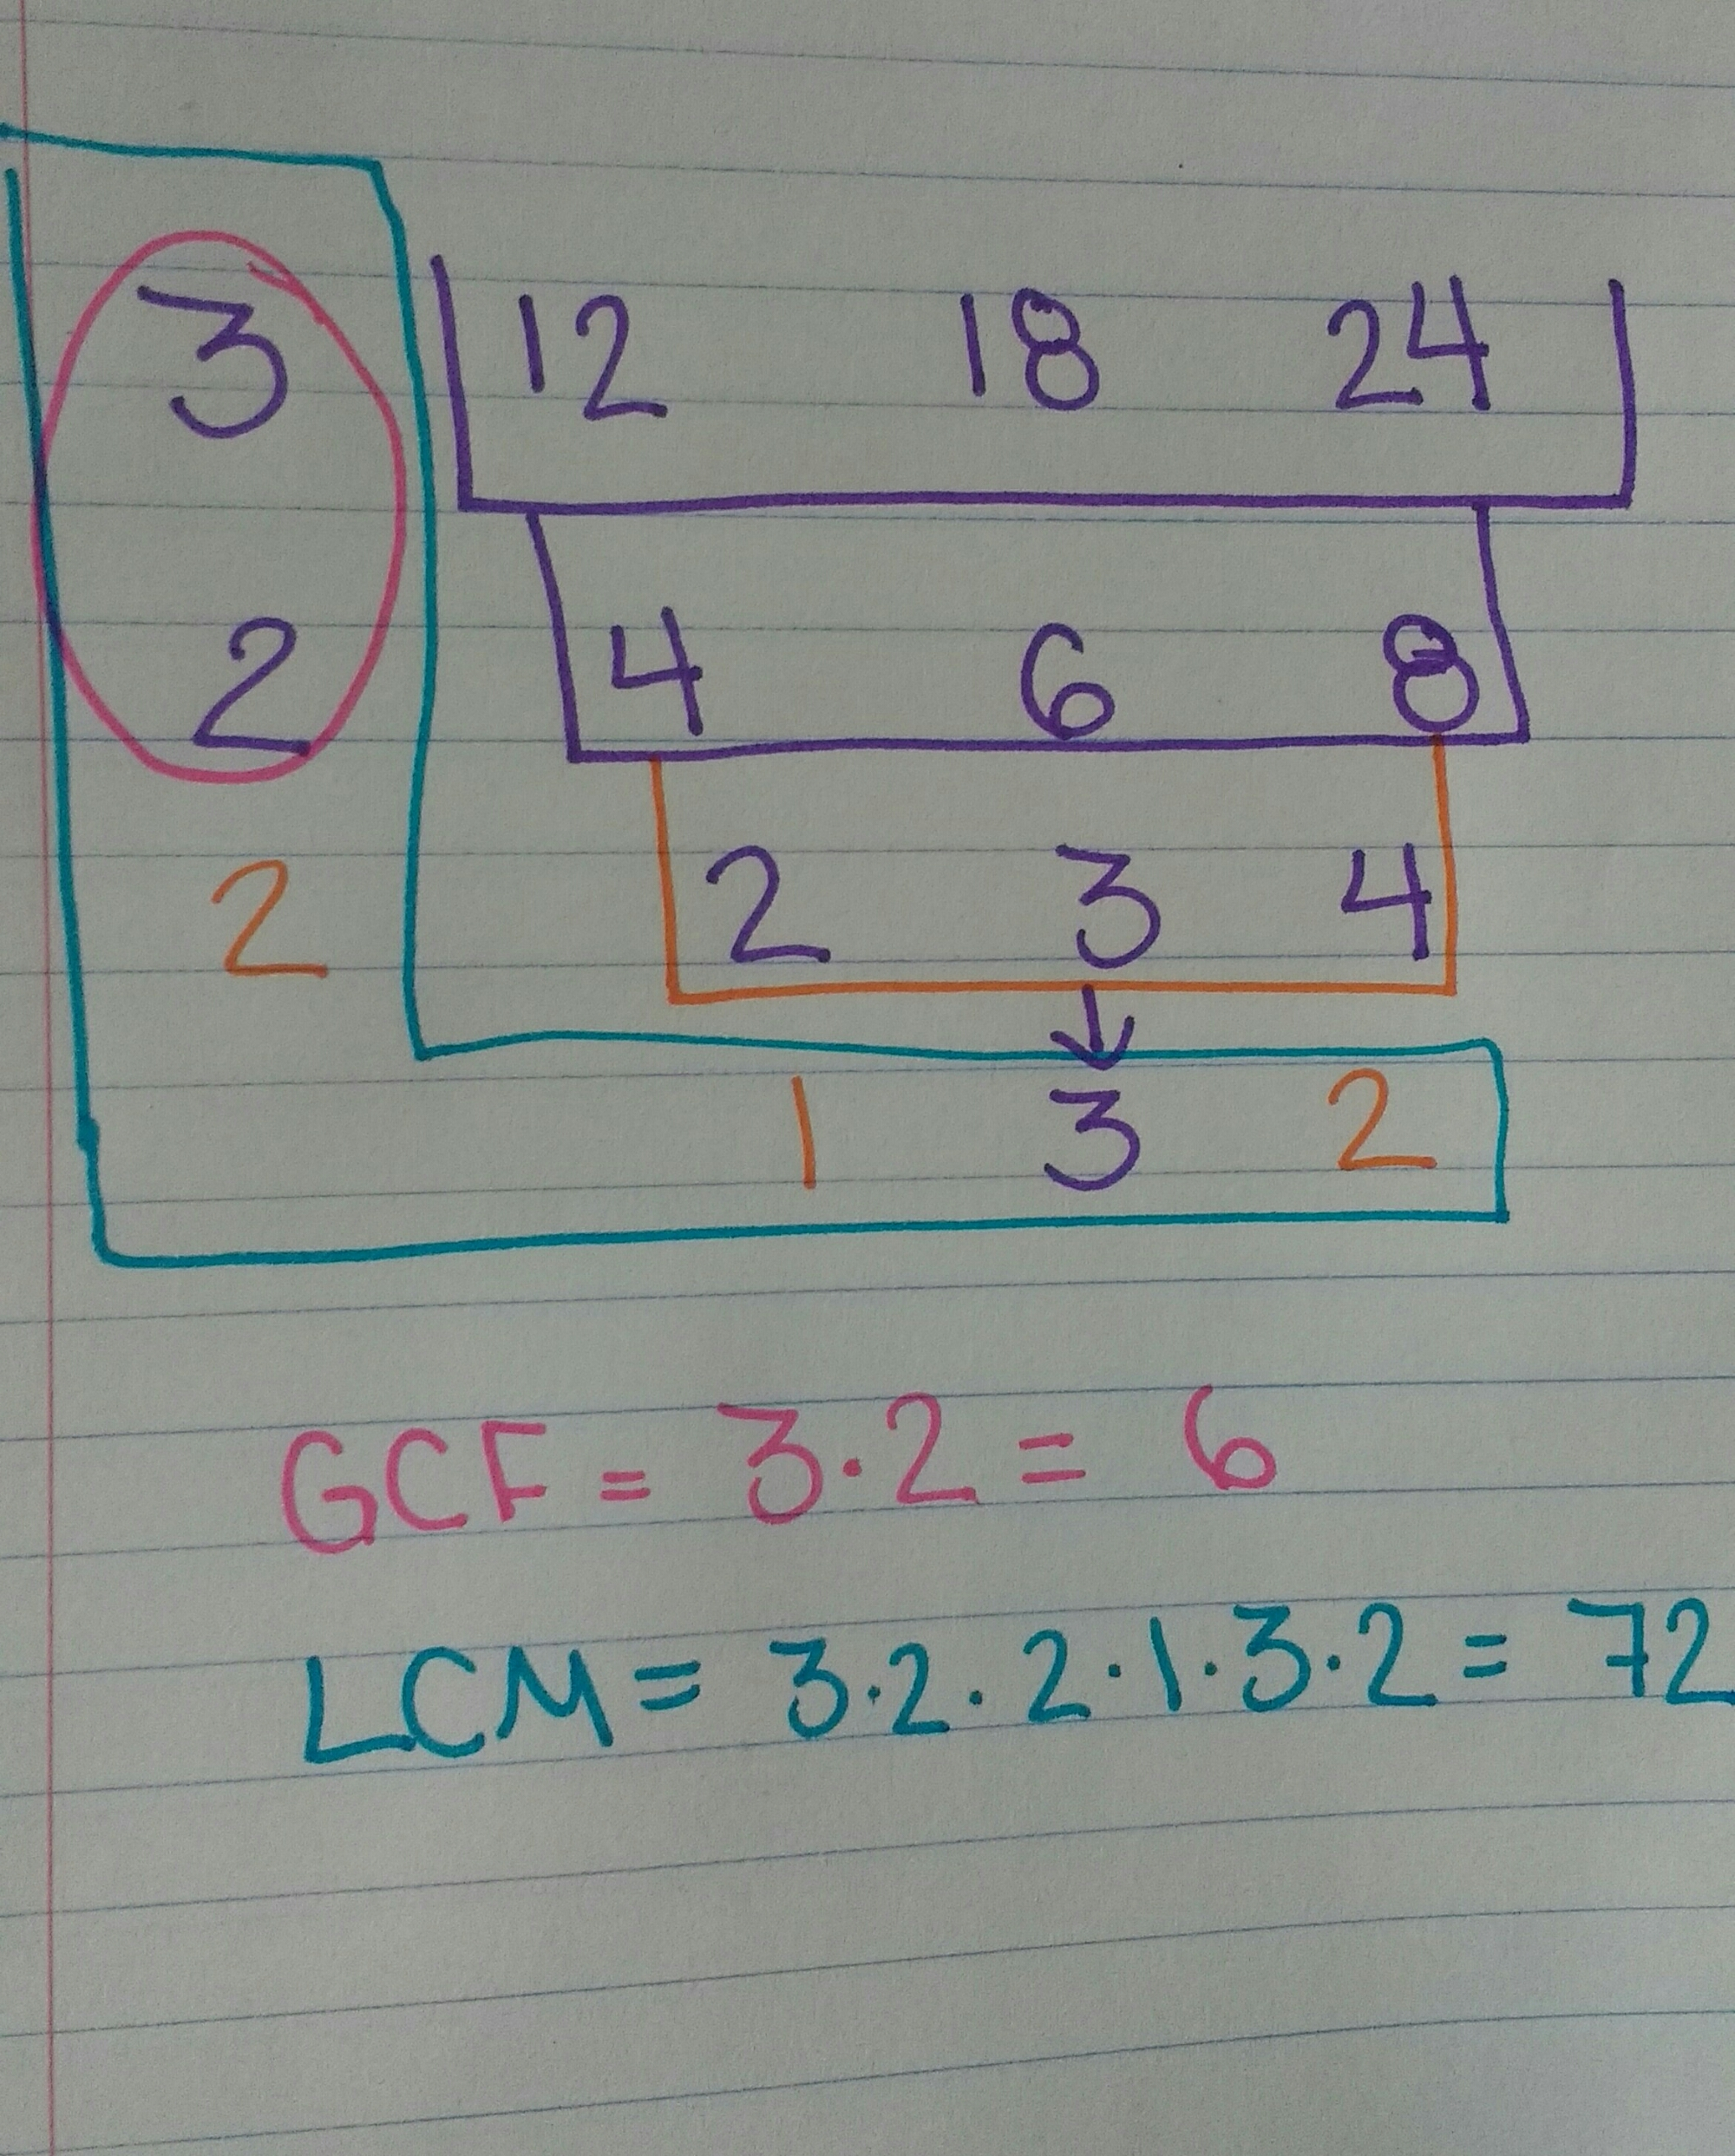 I Absolutely Love The Cake Method And Have Found That The Students Love  It Too And Find It Much Easier Than Other Methods For Finding The Gcf & Lcm